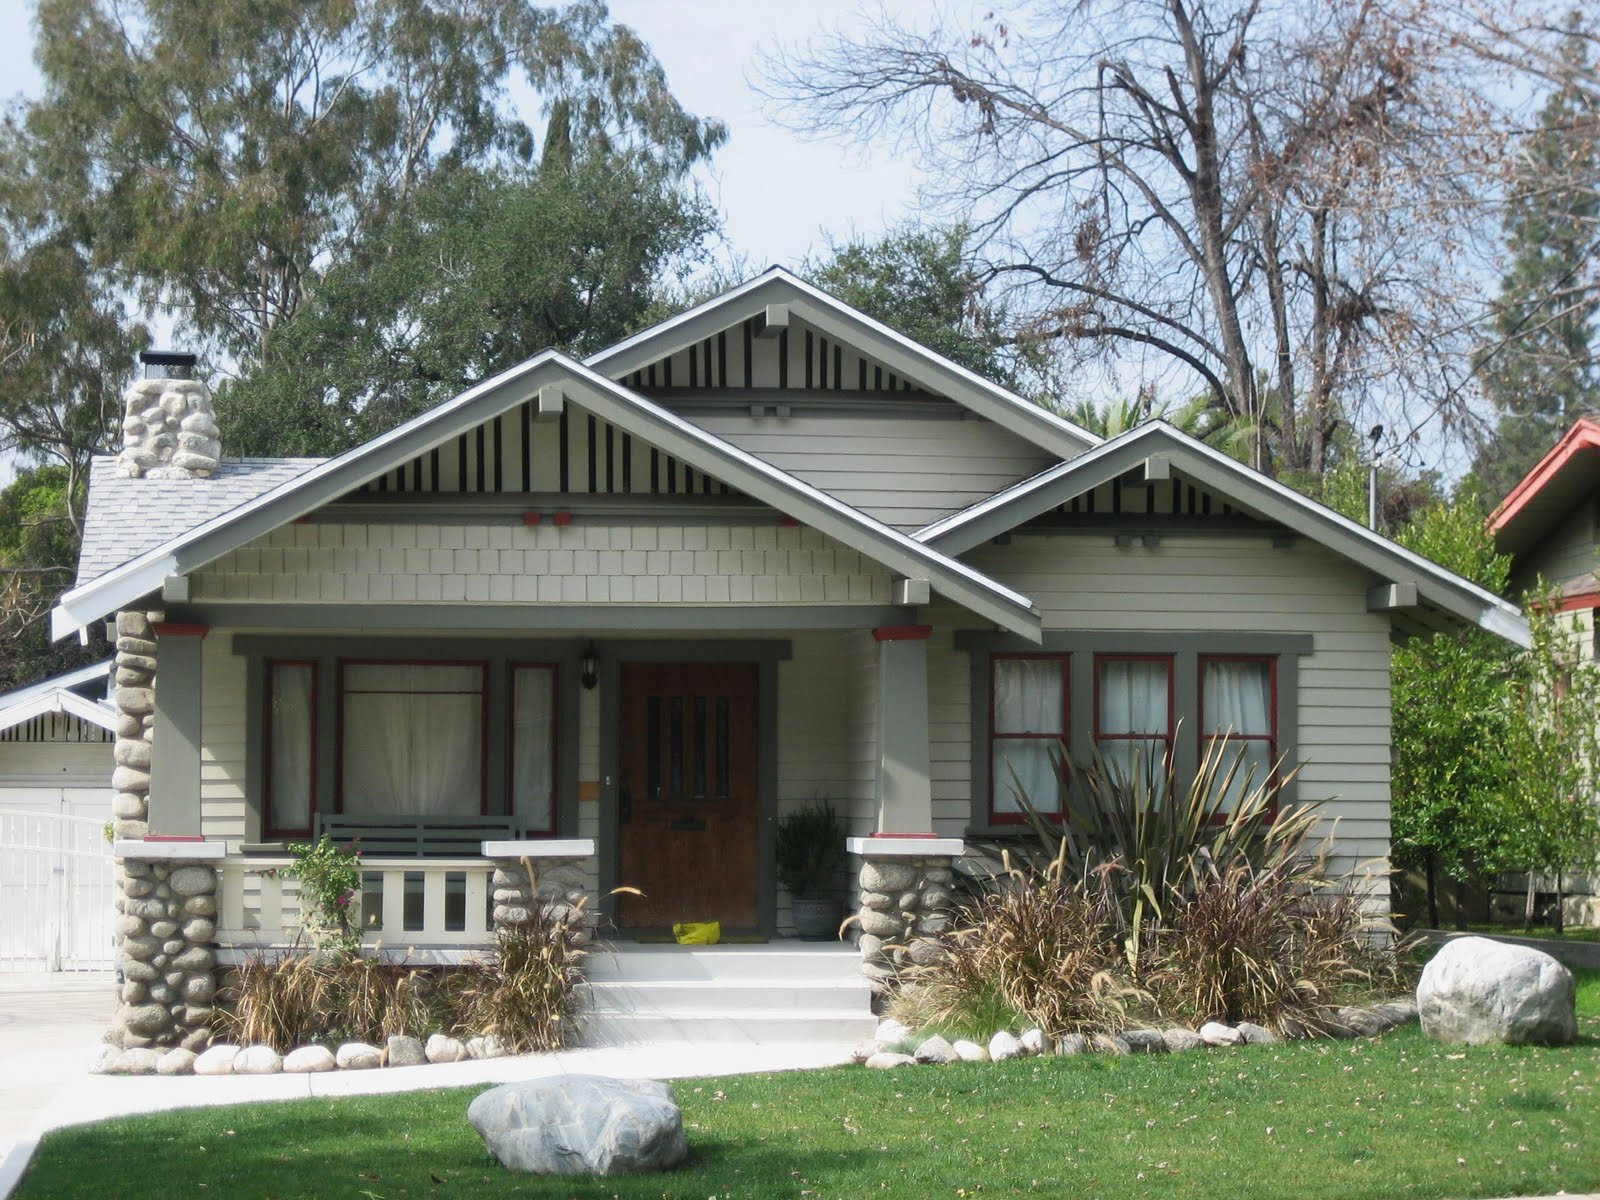 Bungalow Design Ideas American Bungalow Style Home Design Build Planners